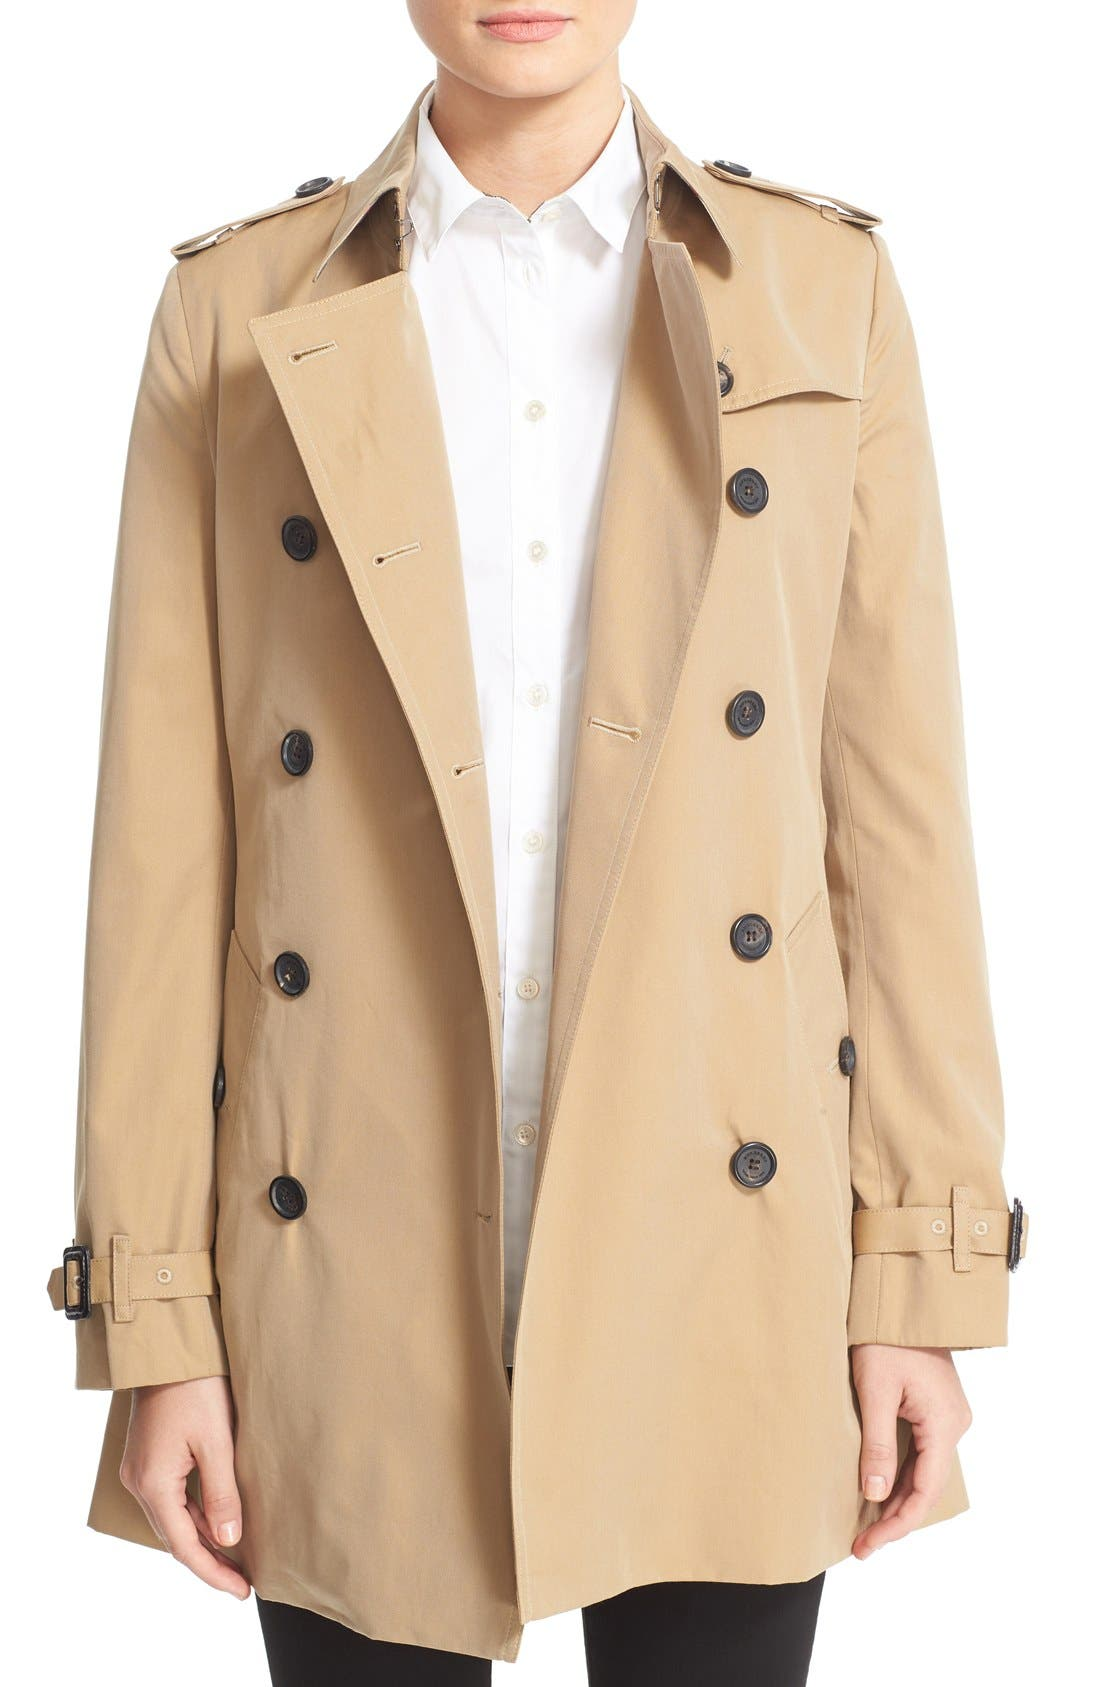 Kensington Short Trench Coat,                         Main,                         color, HONEY